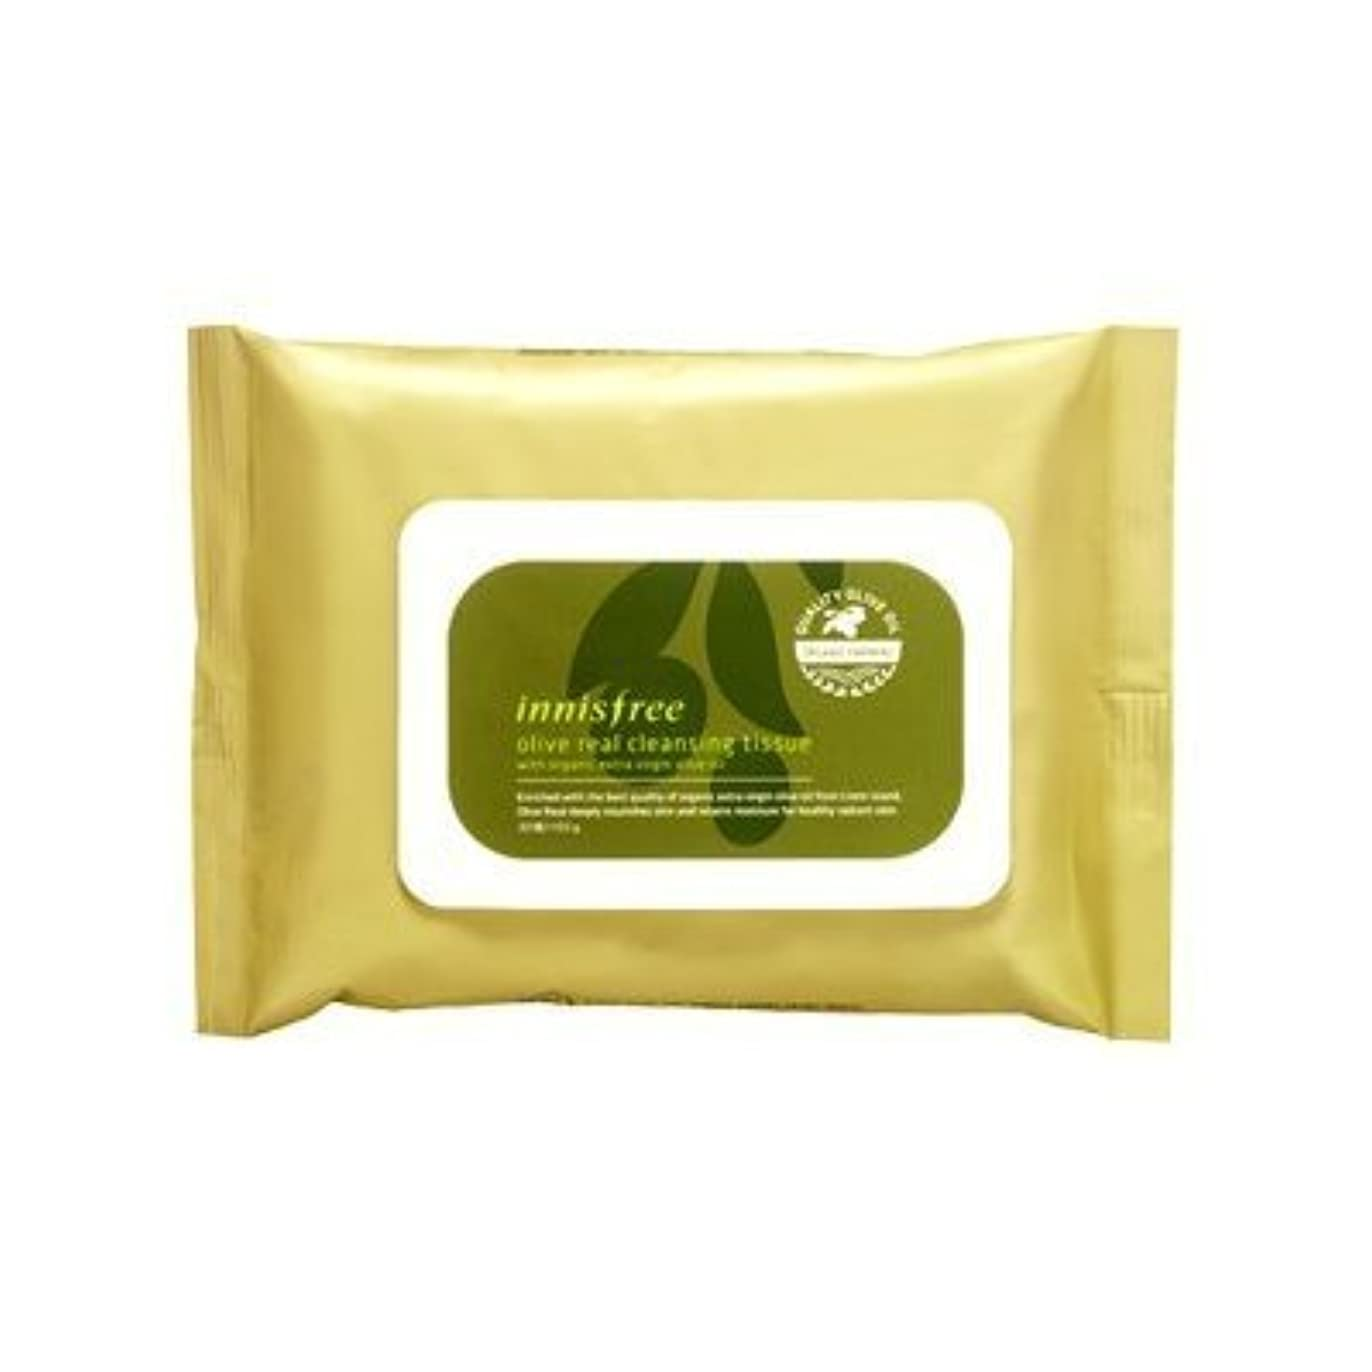 散歩に行く鈍い商品Innisfree Olive Real Cleansing Tissue (30 sheets)